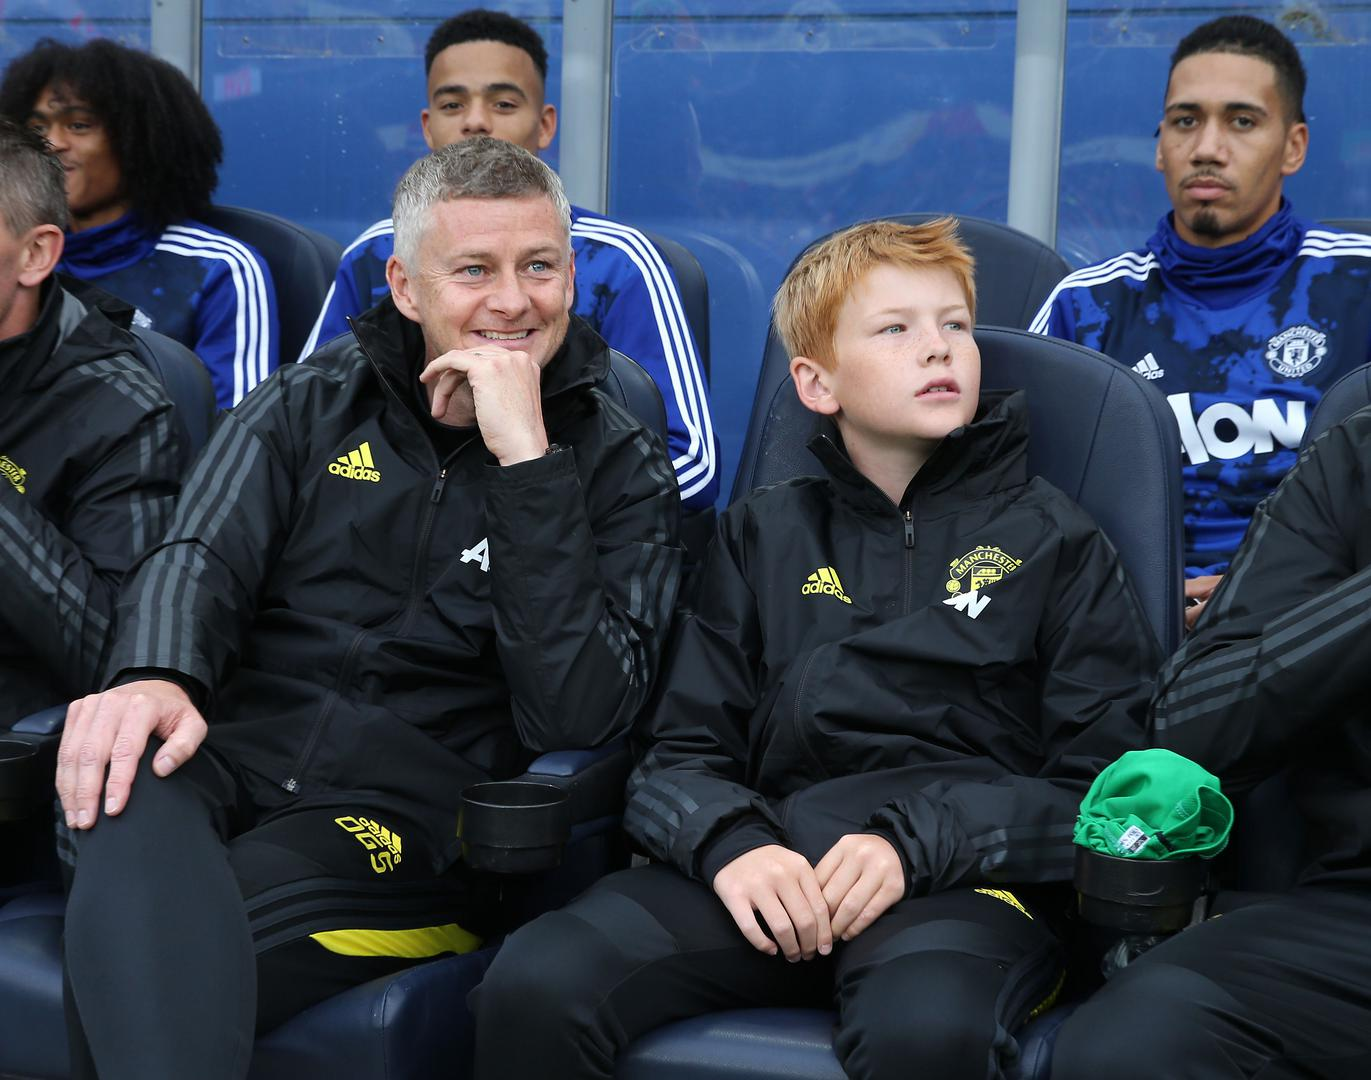 Ole Gunnar Solskjaer on the bench with his son Elijah.